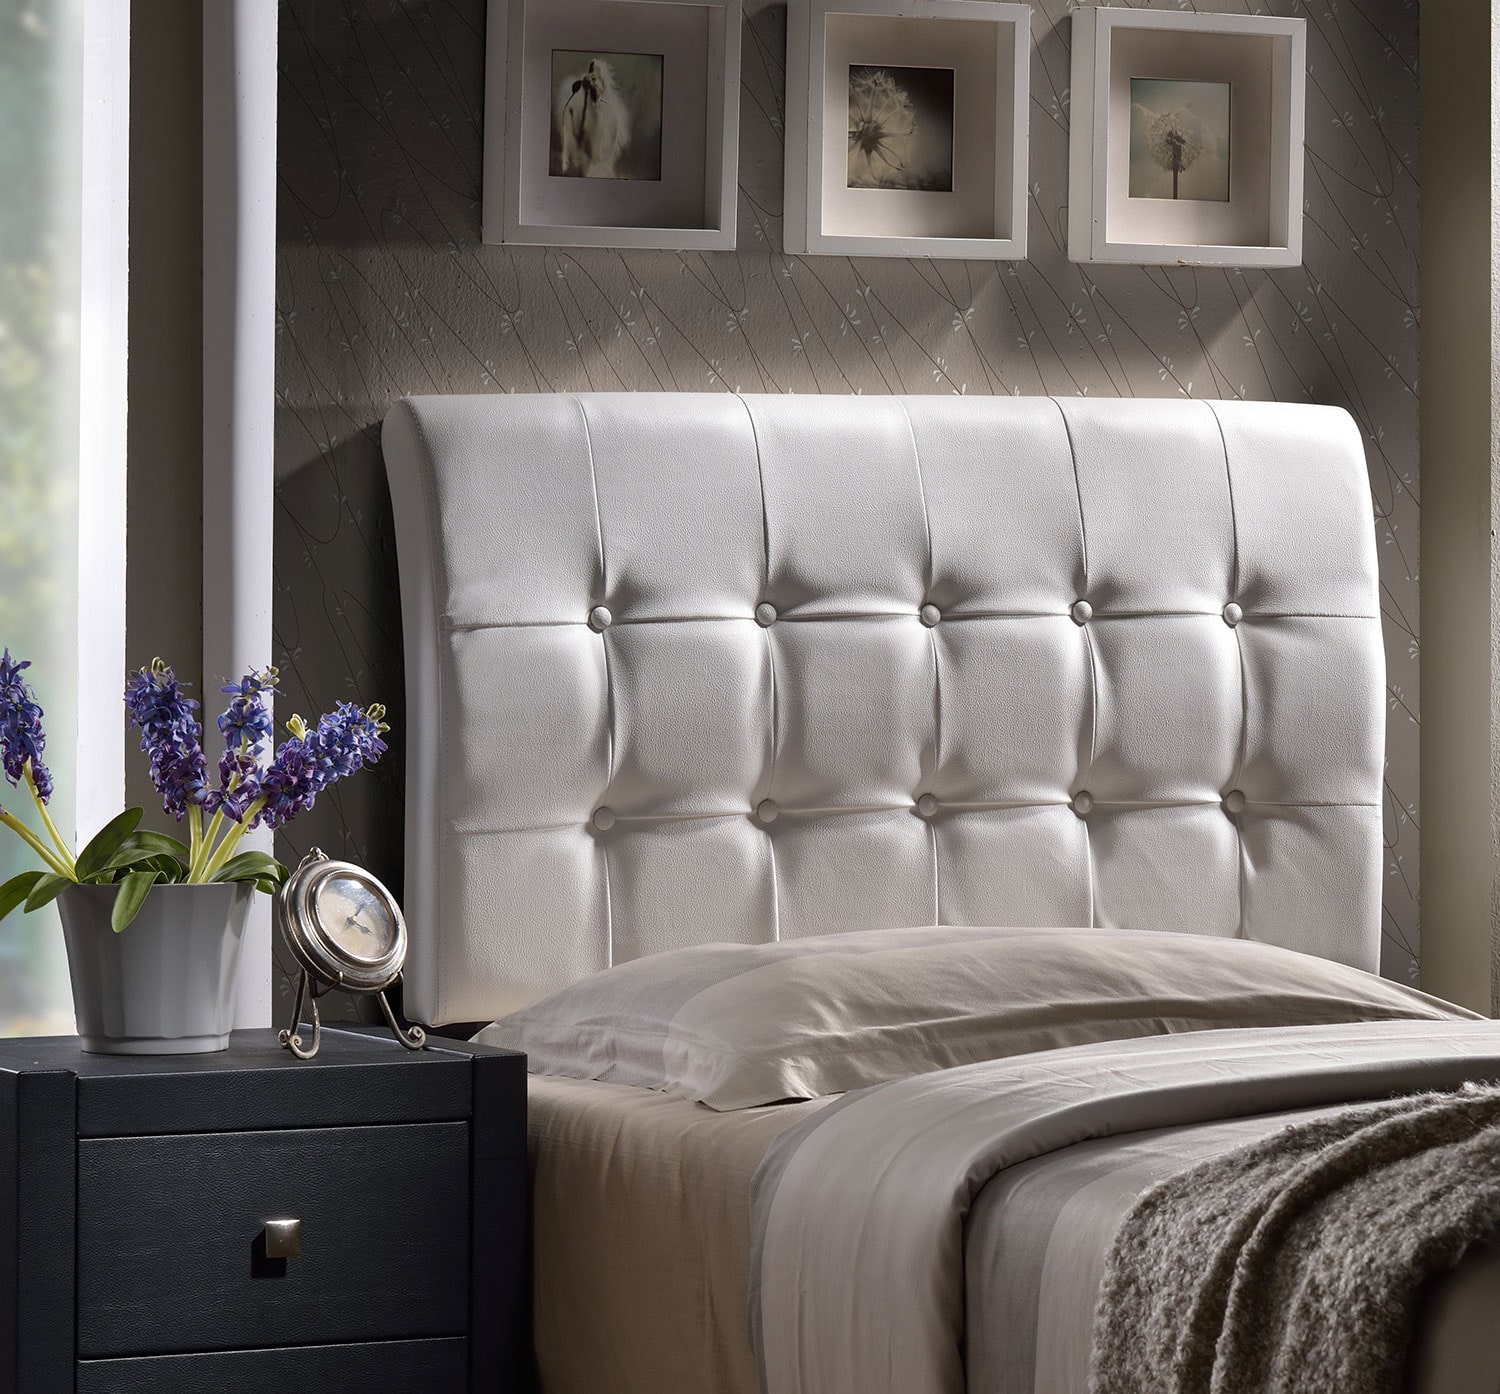 Bedroom Furniture - Lusso Queen Headboard - White